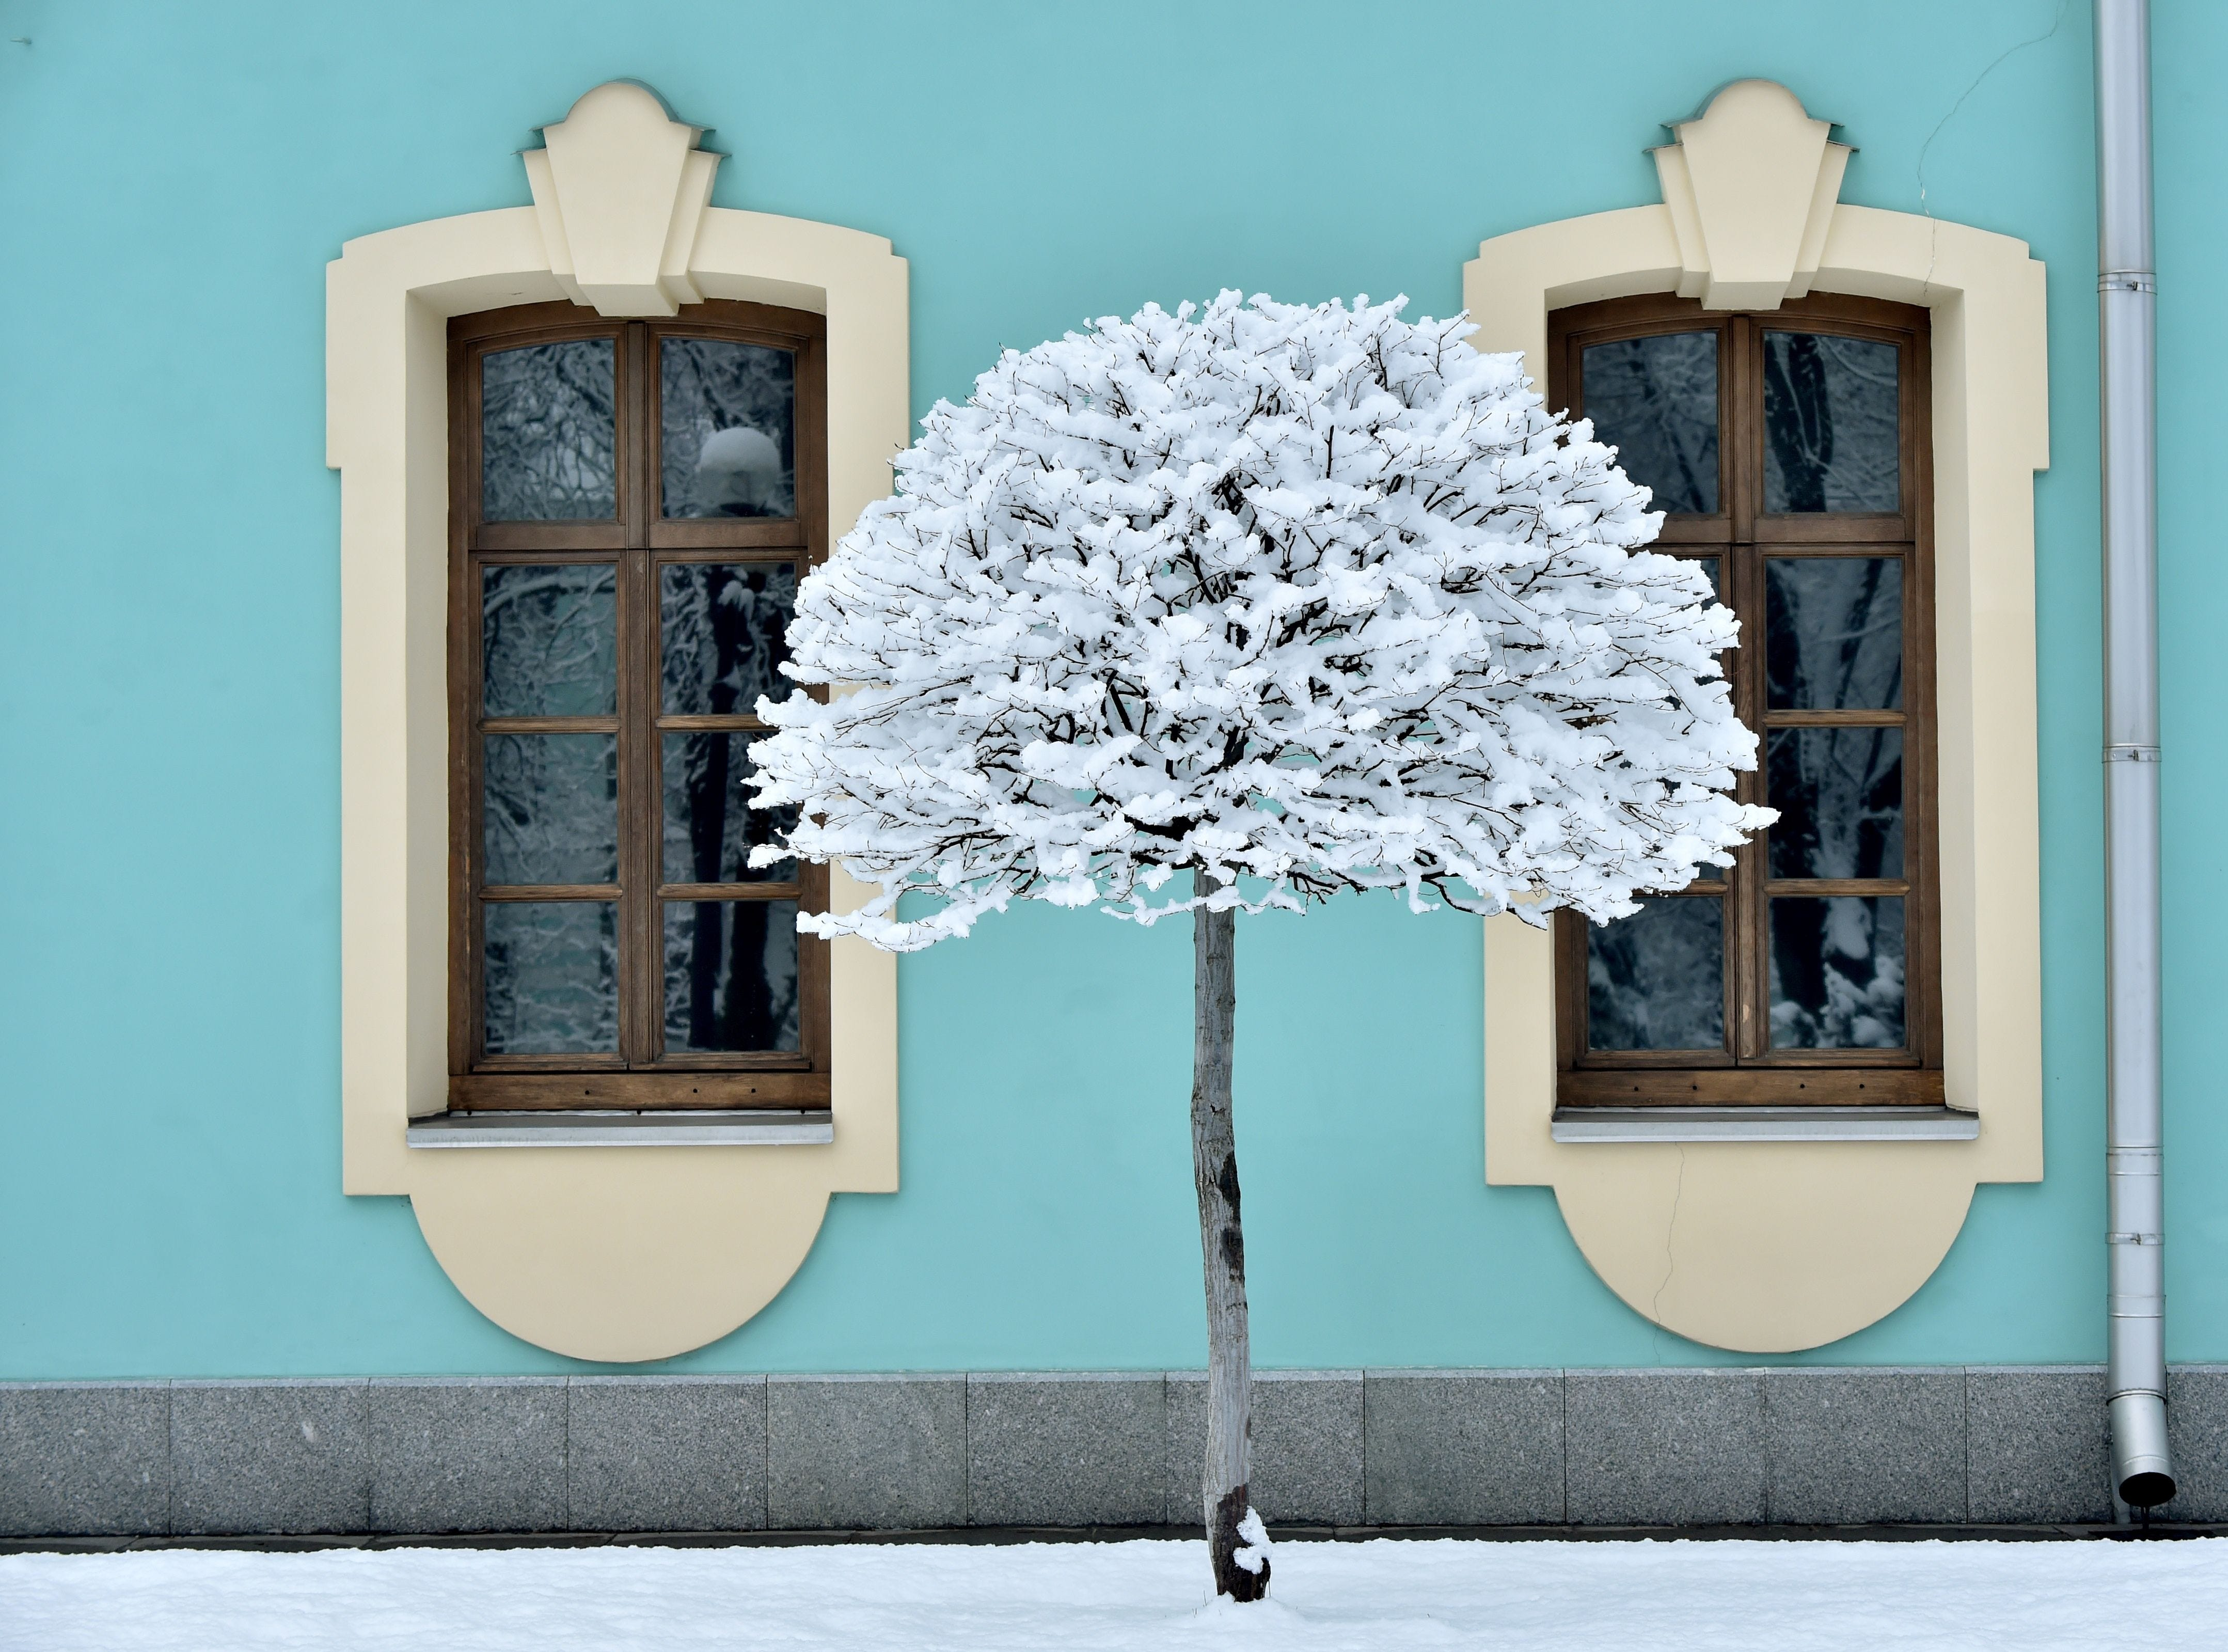 A tree is covered after a heavy snowfall in the Ukrainian capital Kiev, on Feb. 6, 2019.